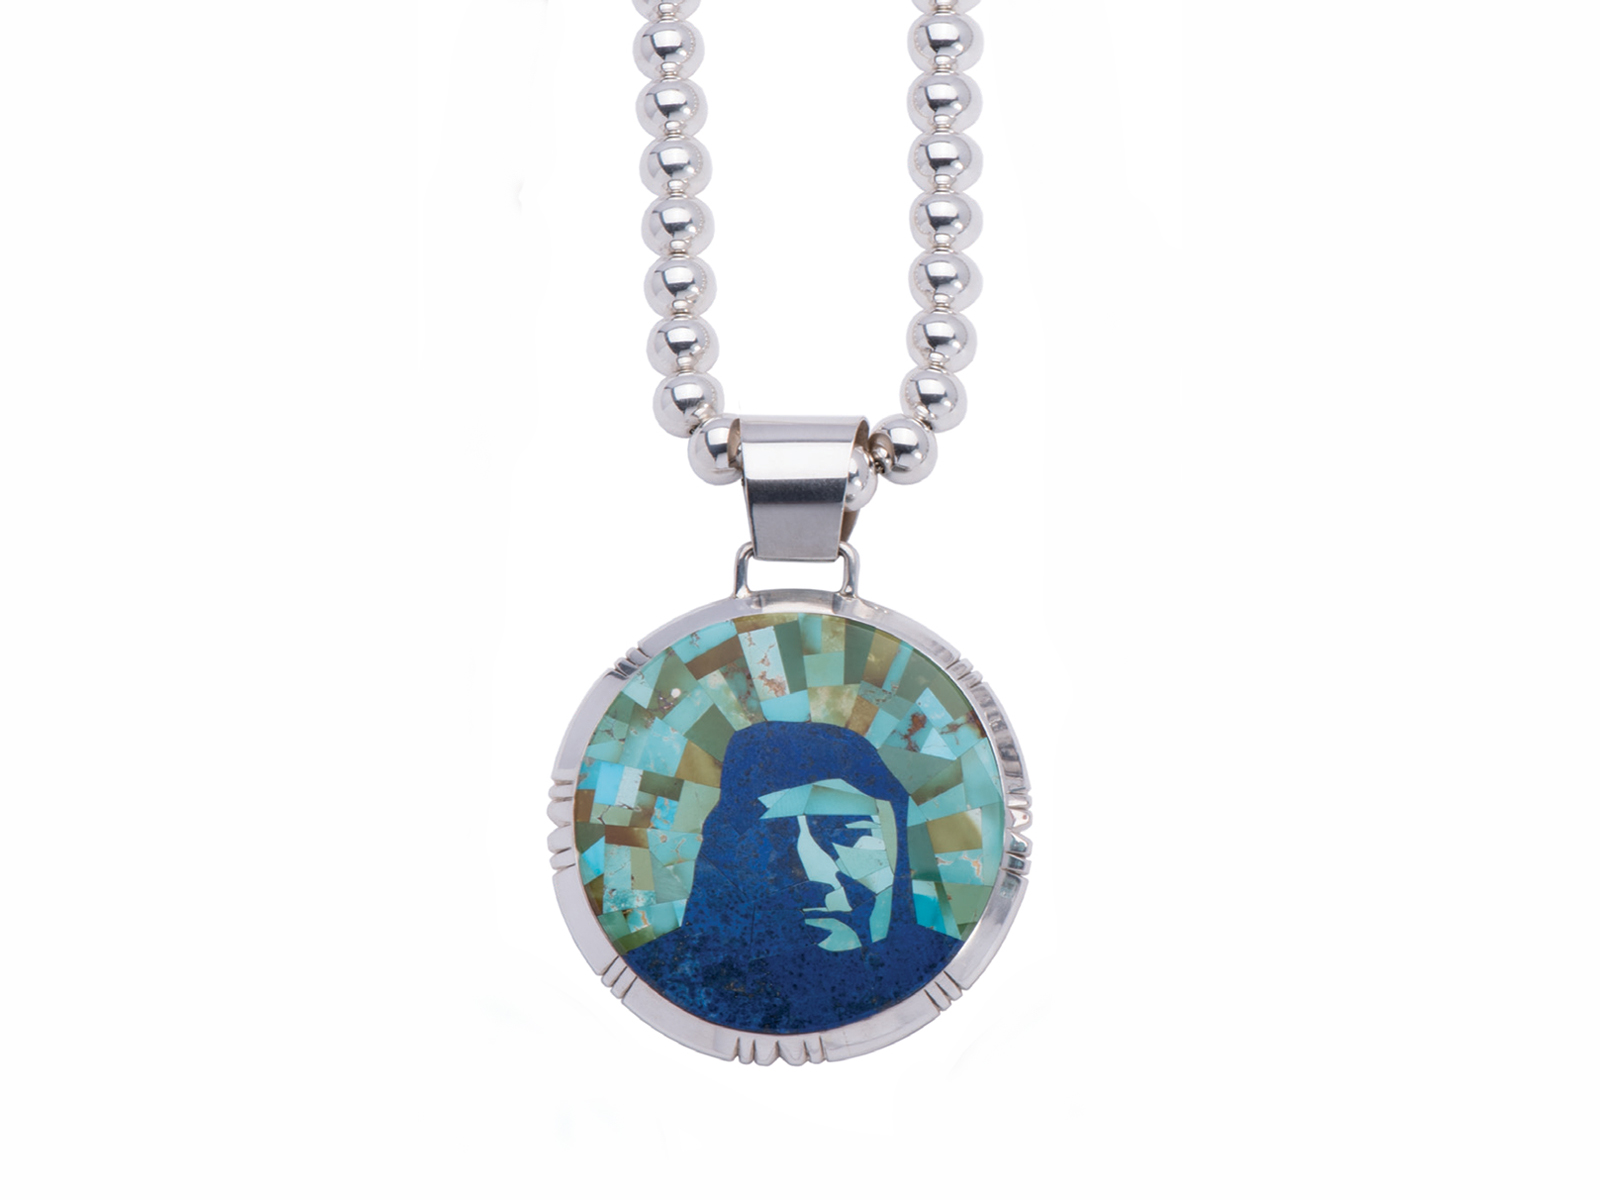 Chief Joseph Inlay Pendant